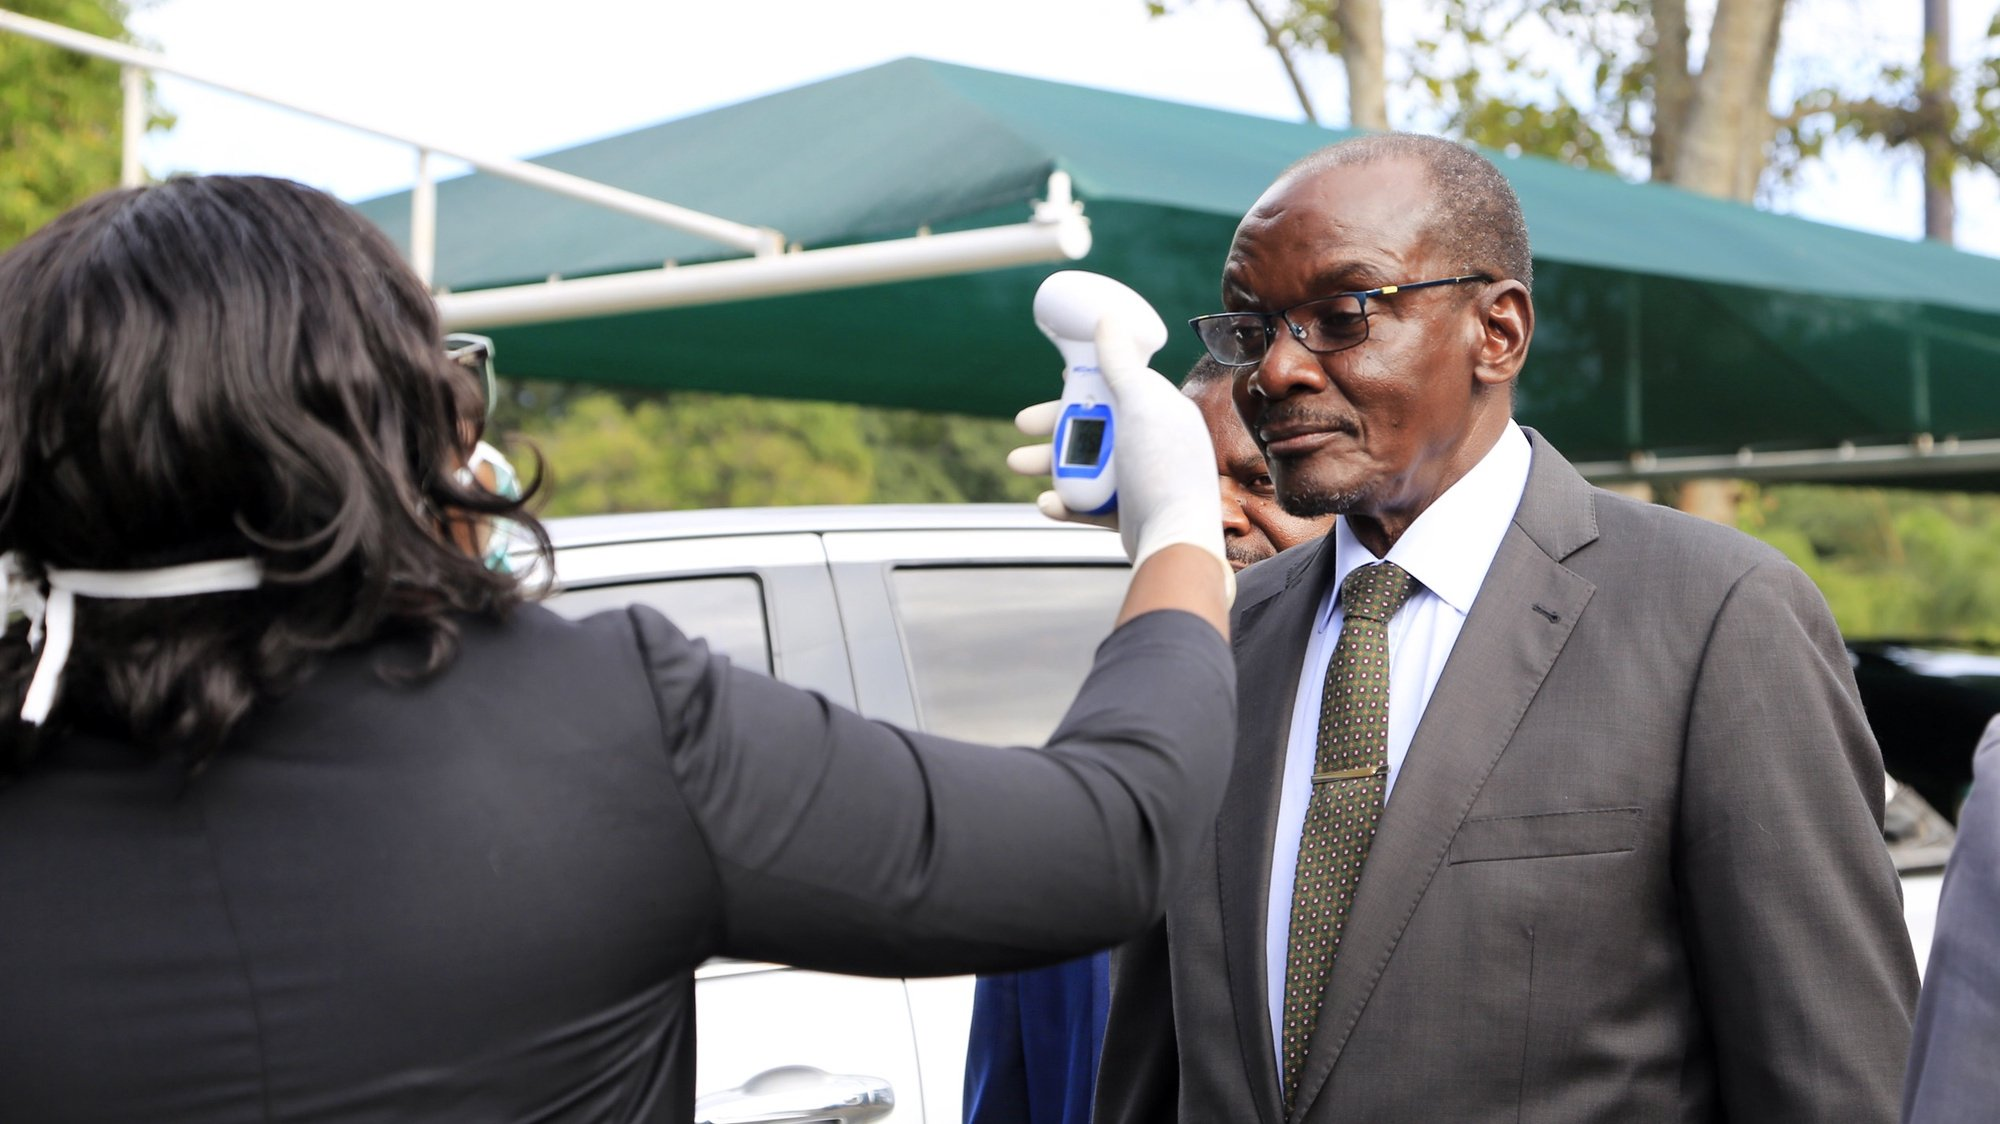 epa08306463 A health officer checks a temerature of Zimbabwean co vice president Kembo Mohadi  (C) before Zimbabwe's President Emmerson Mnangagwa speech at the launch of the Covid -19  Preparedness and Response Plan at the State House in Harare, Zimbabwe, 19 March 2020. There is no confirmed case of COVID-19 in Zimbabwe yet. Countries around the world are taking increased measures to prevent the wide spread of the SARS-CoV-2 Coronavirus causing the Covid-19 disease.  EPA/AARON UFUMELI